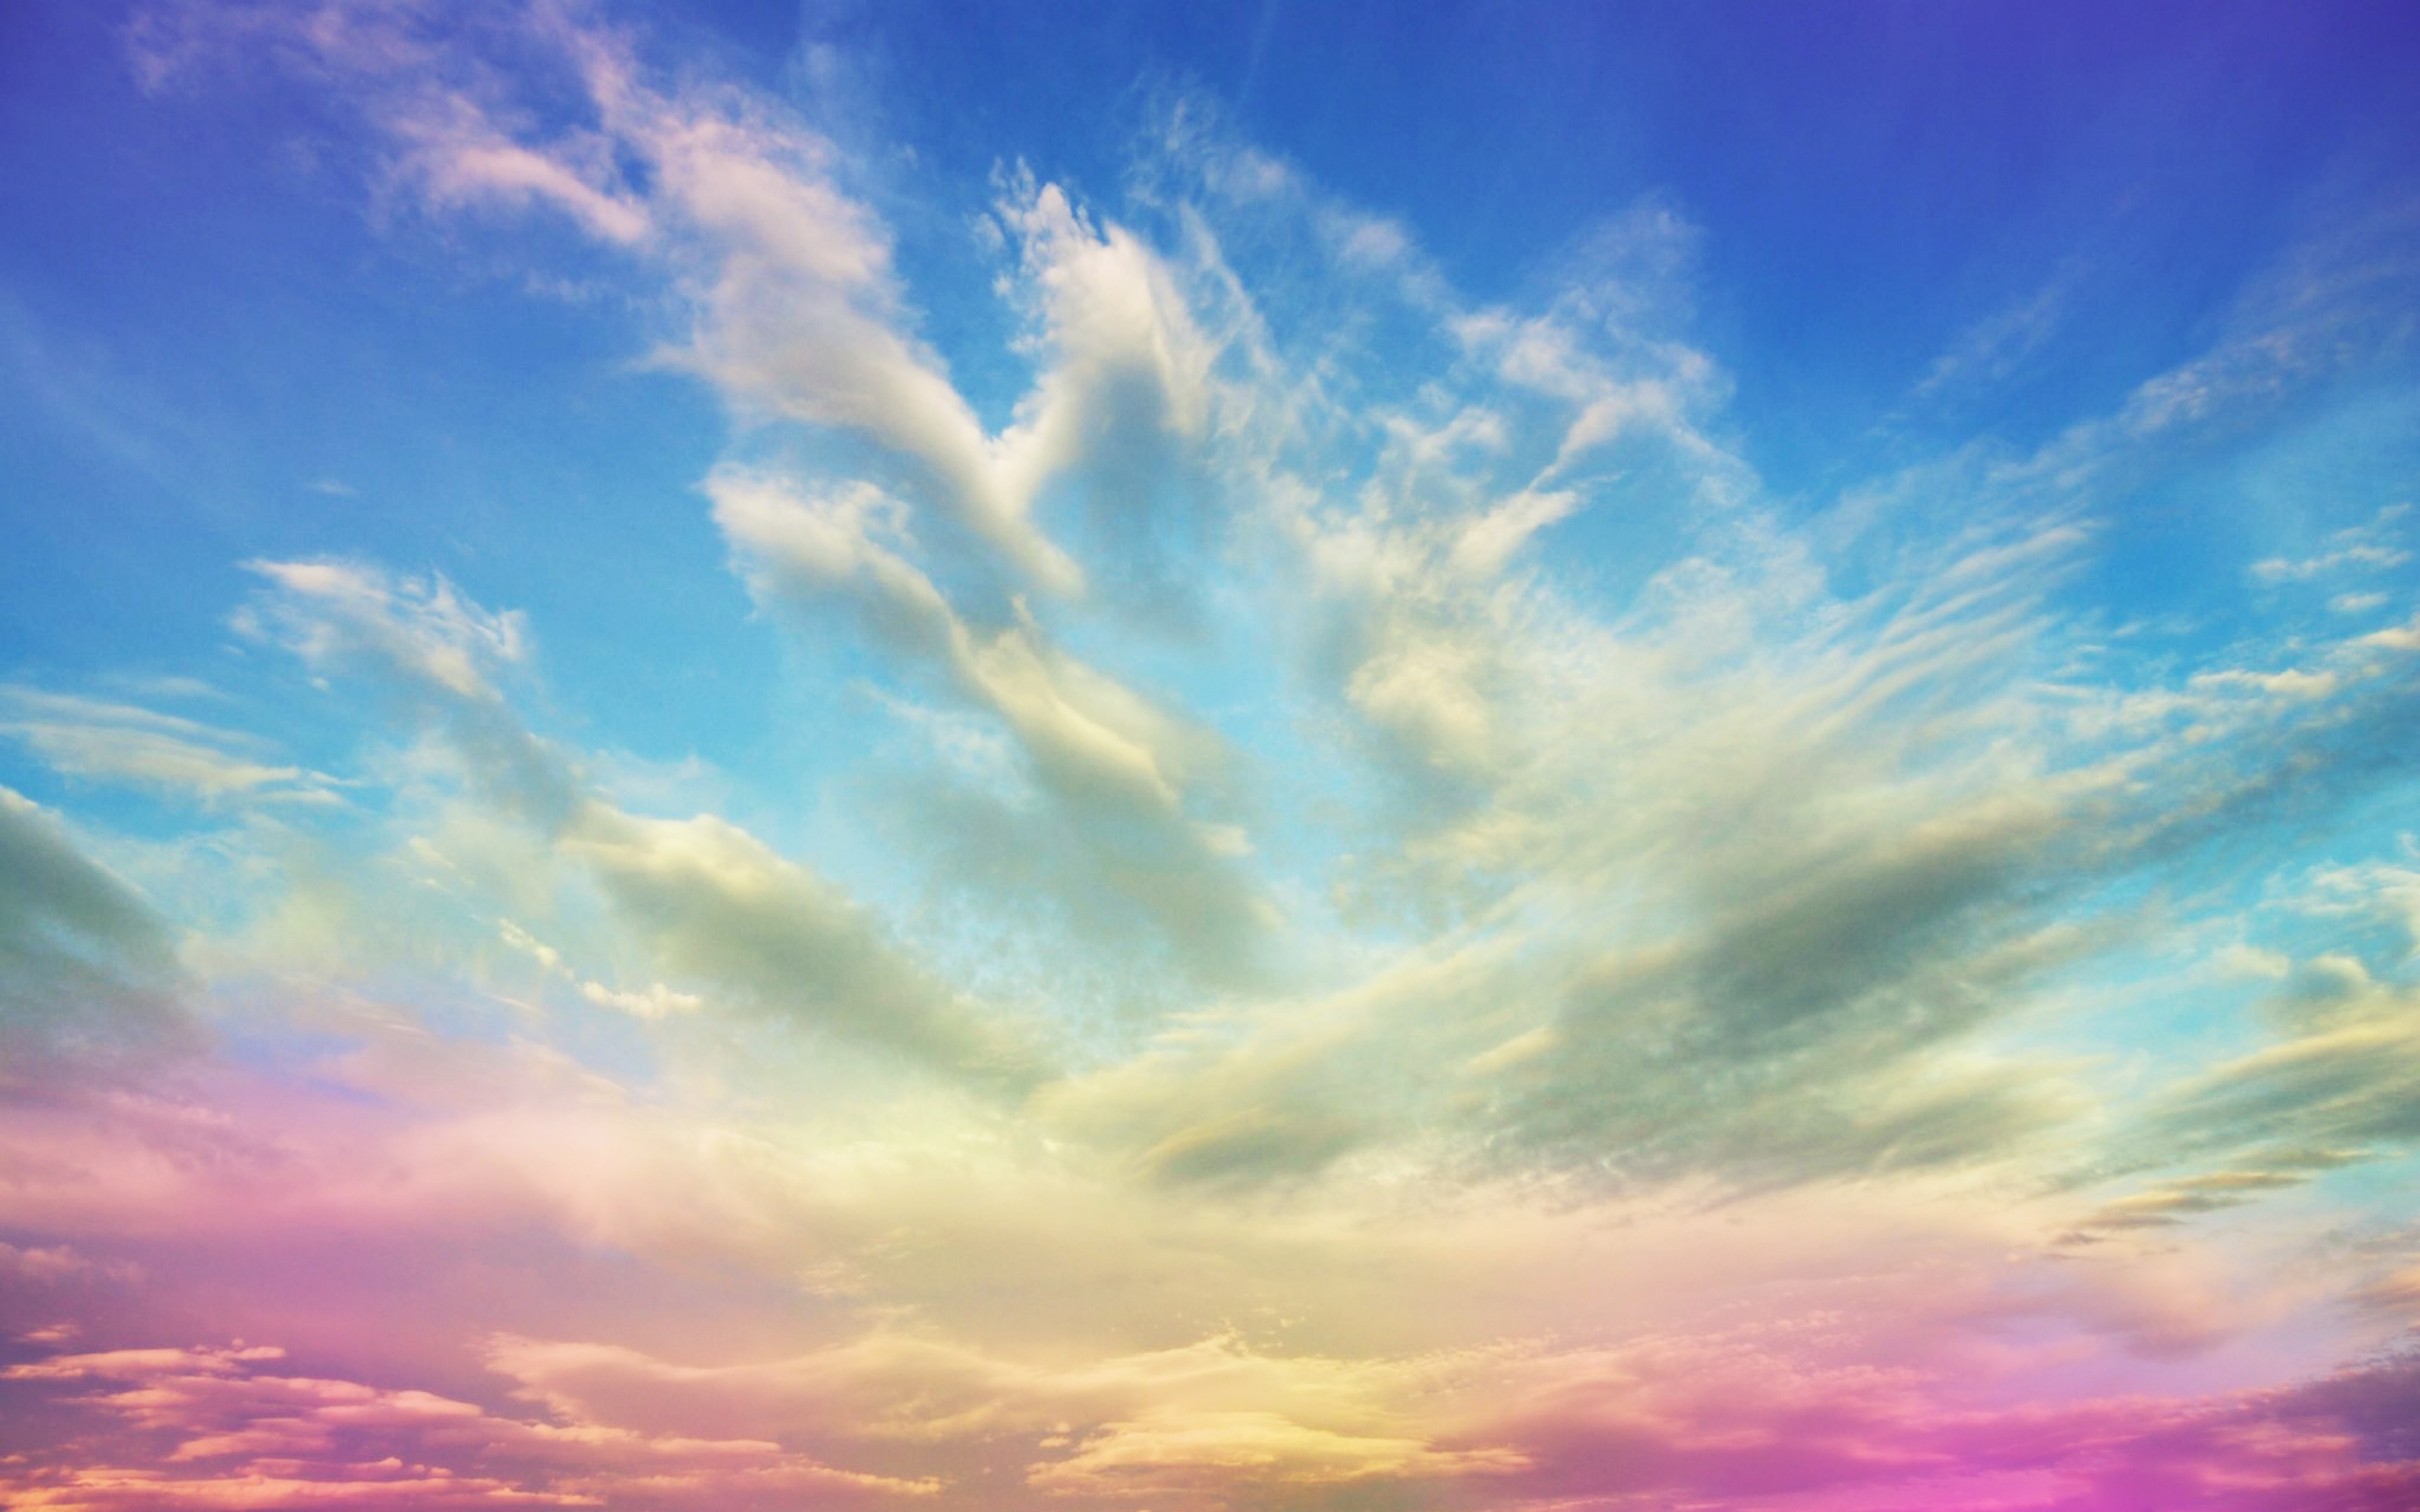 sky background picture